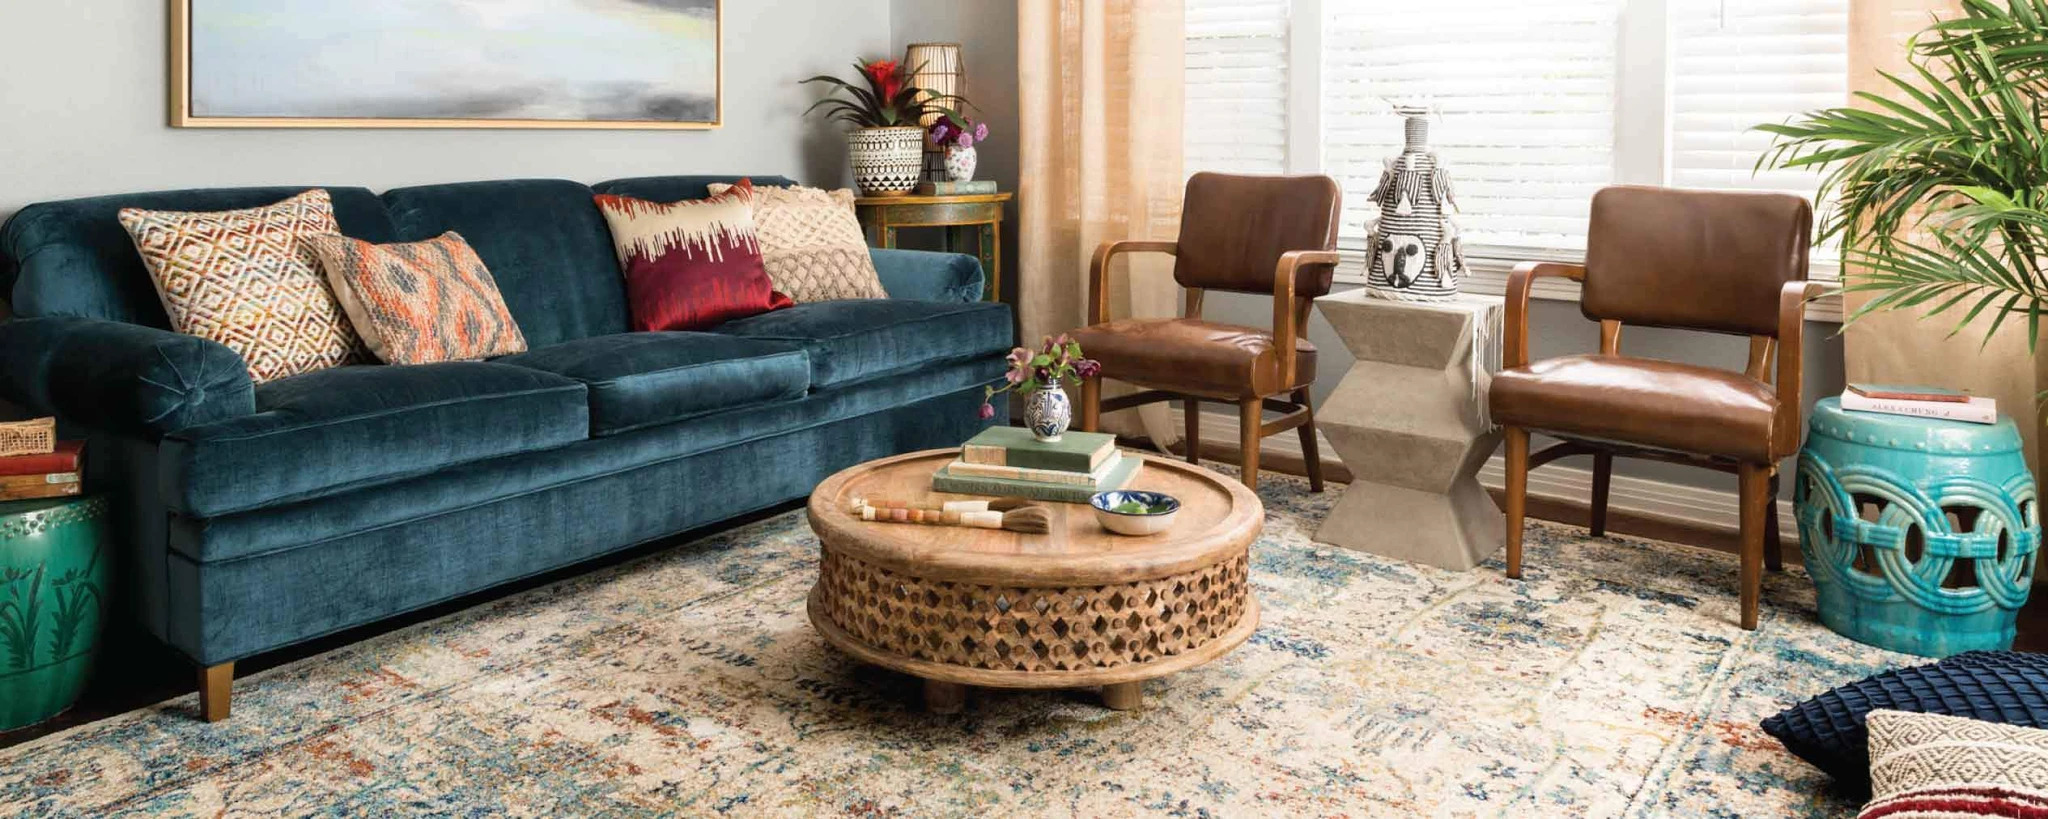 Coffee table with flowers and natural elements